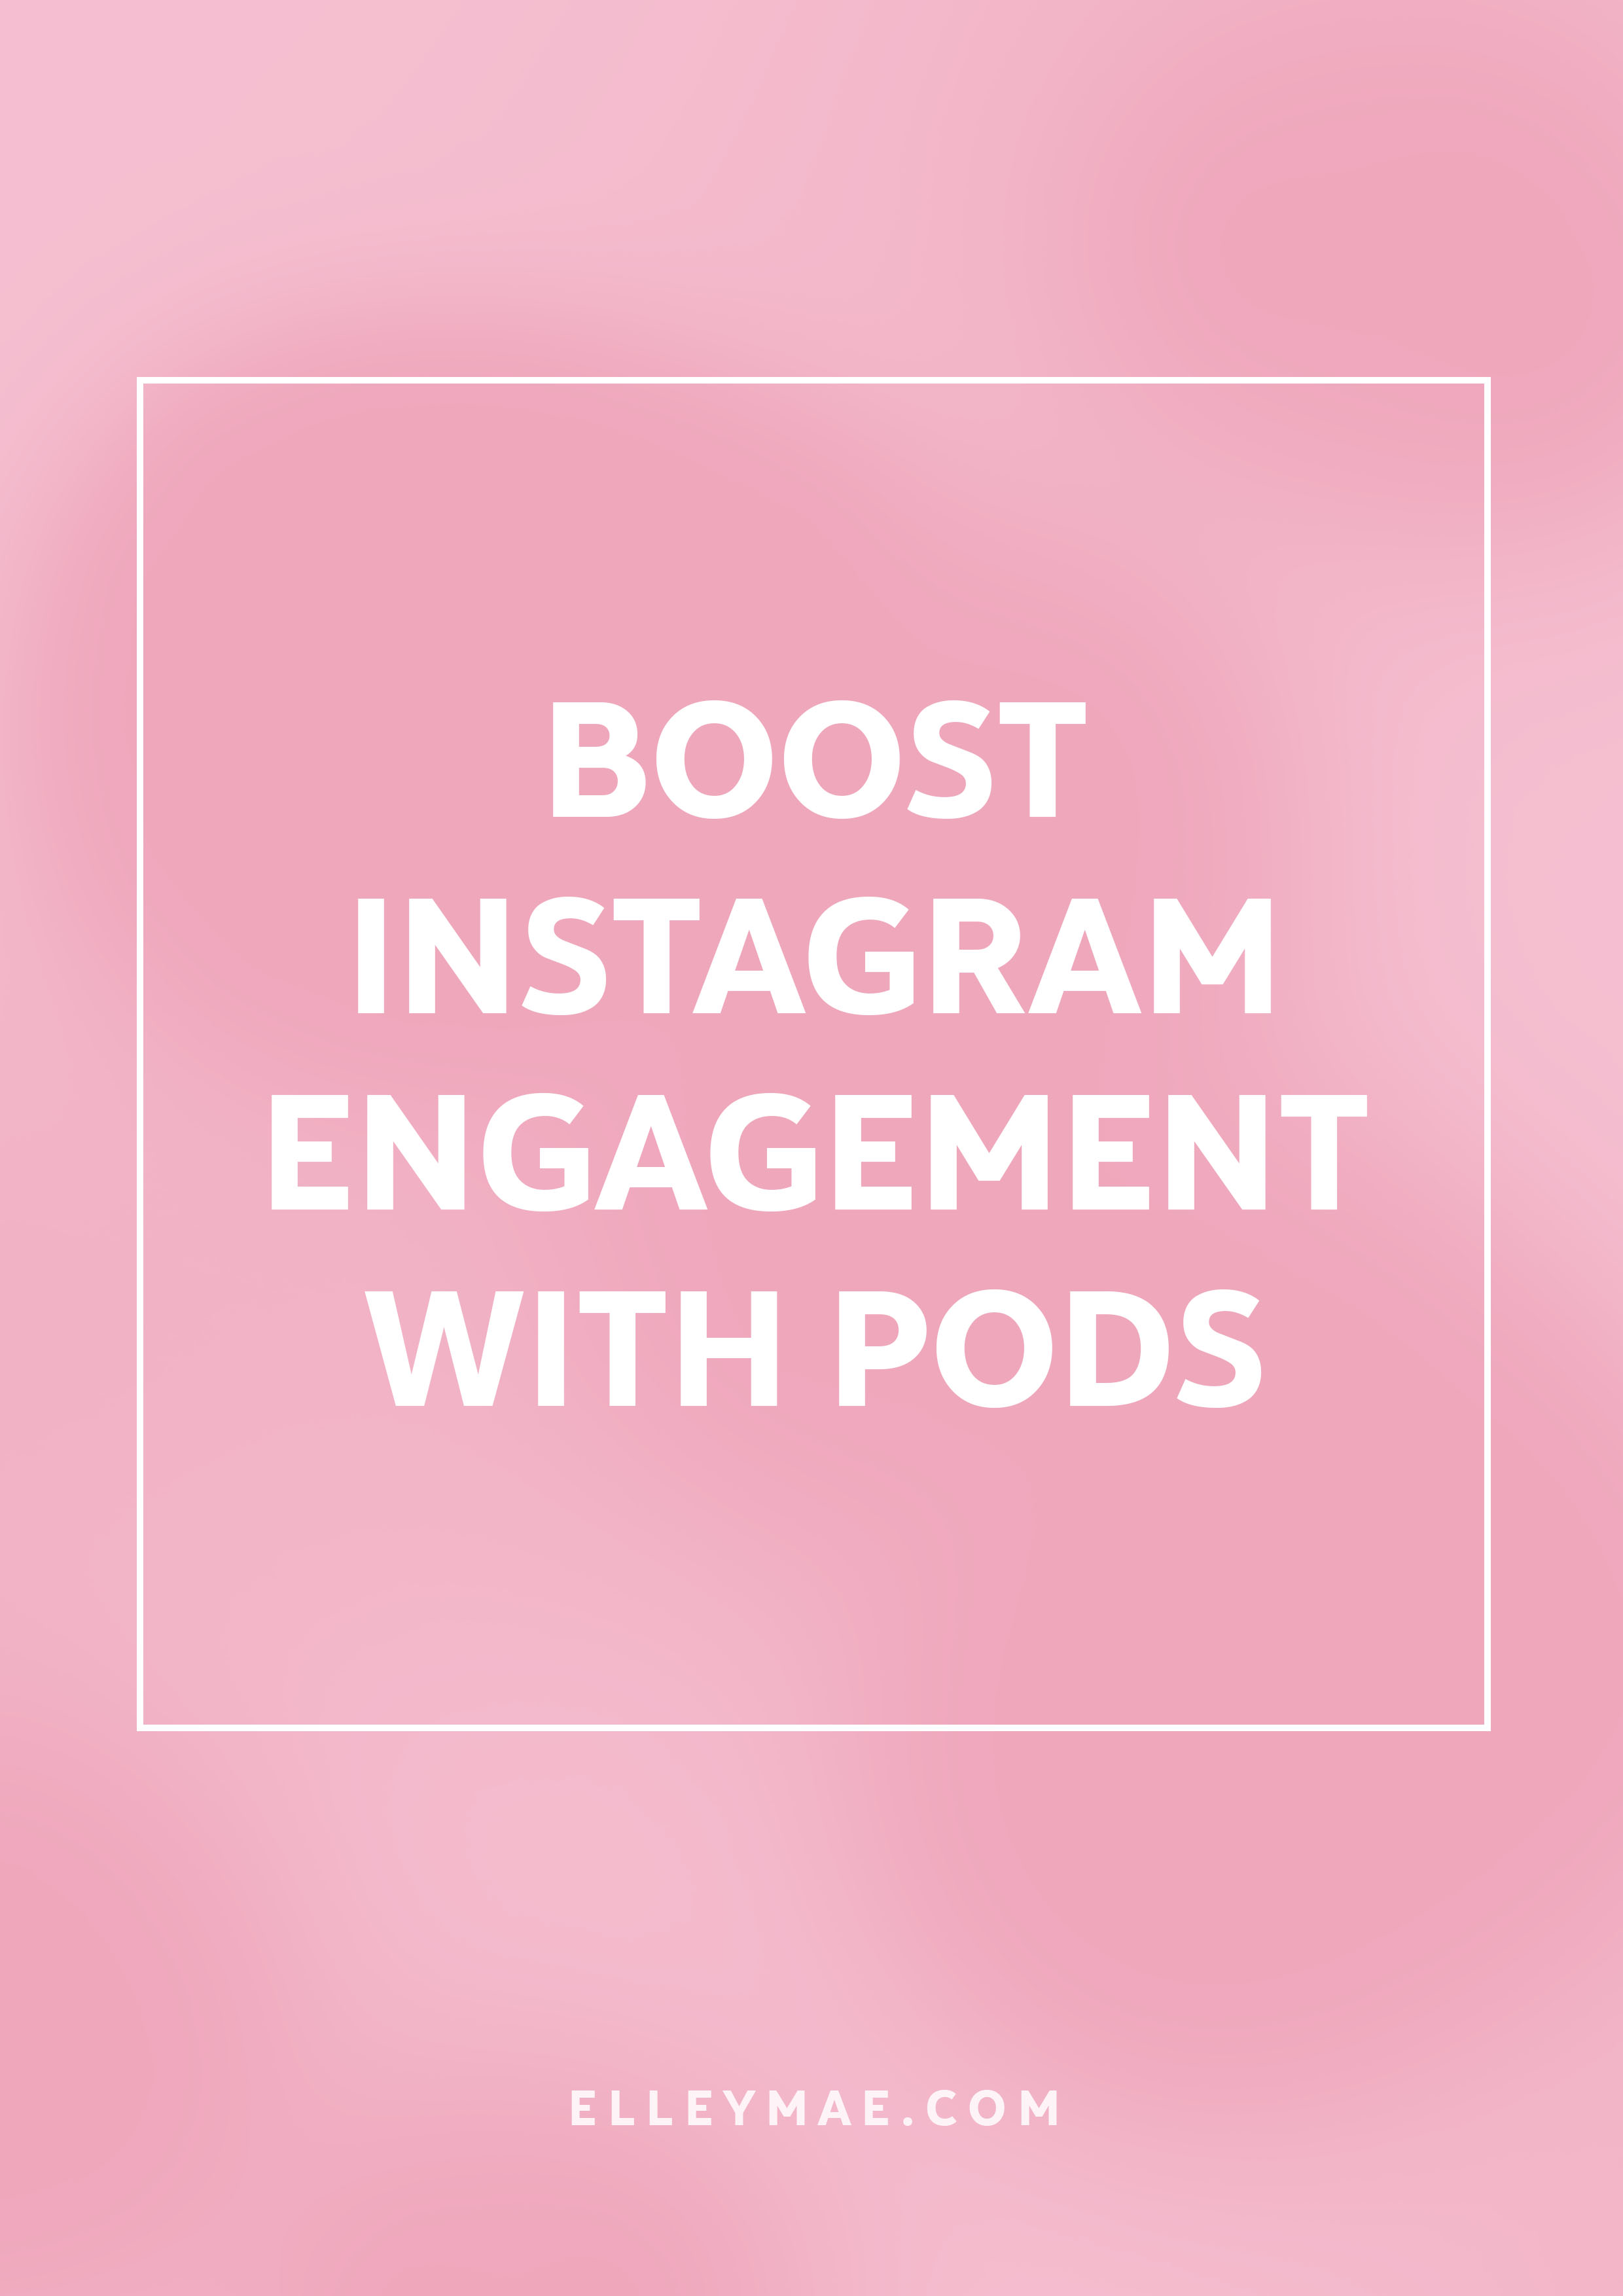 What Are Instagram Pods & Should You Join One? | Boost Instagram Engagement | Gain Instagram Followers Fast | SkyRocket Your Instagram | Grow your Instagram following by joining Instagram comment pods. It'll help to boost your engagement & see your posts land on the explore page more often that not. Beat the Instagram algorithm & kick ass on Instagram! | Learn more at ElleyMae.com